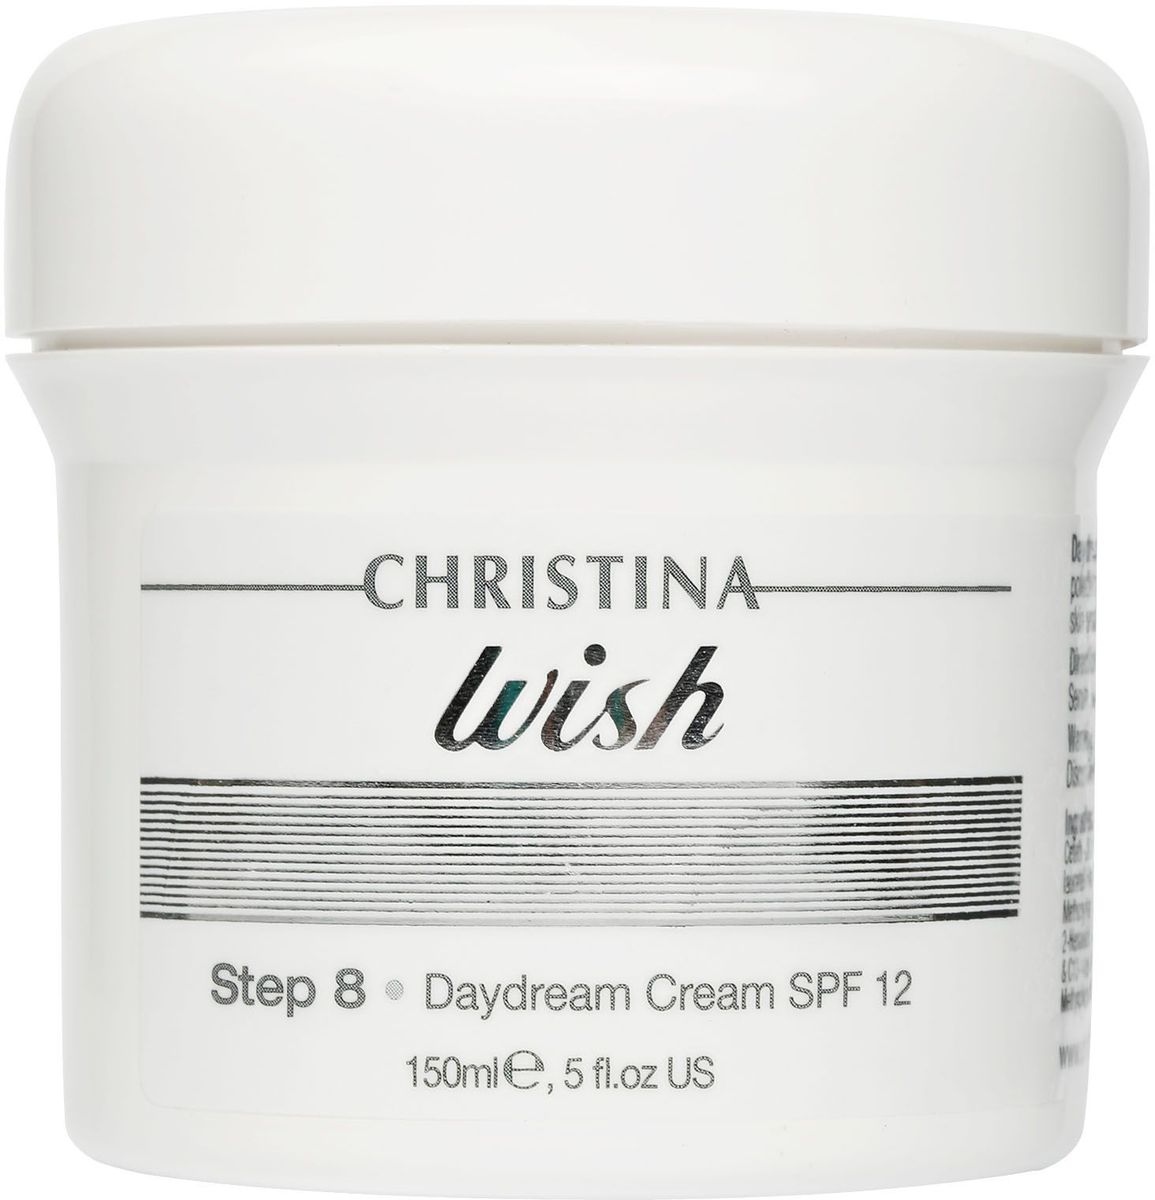 Christina Wish Wish Day Cream SPF12 - Дневной крем SPF12 для лица 50 мл крем christina muse shielding day cream spf 30 объем 150 мл